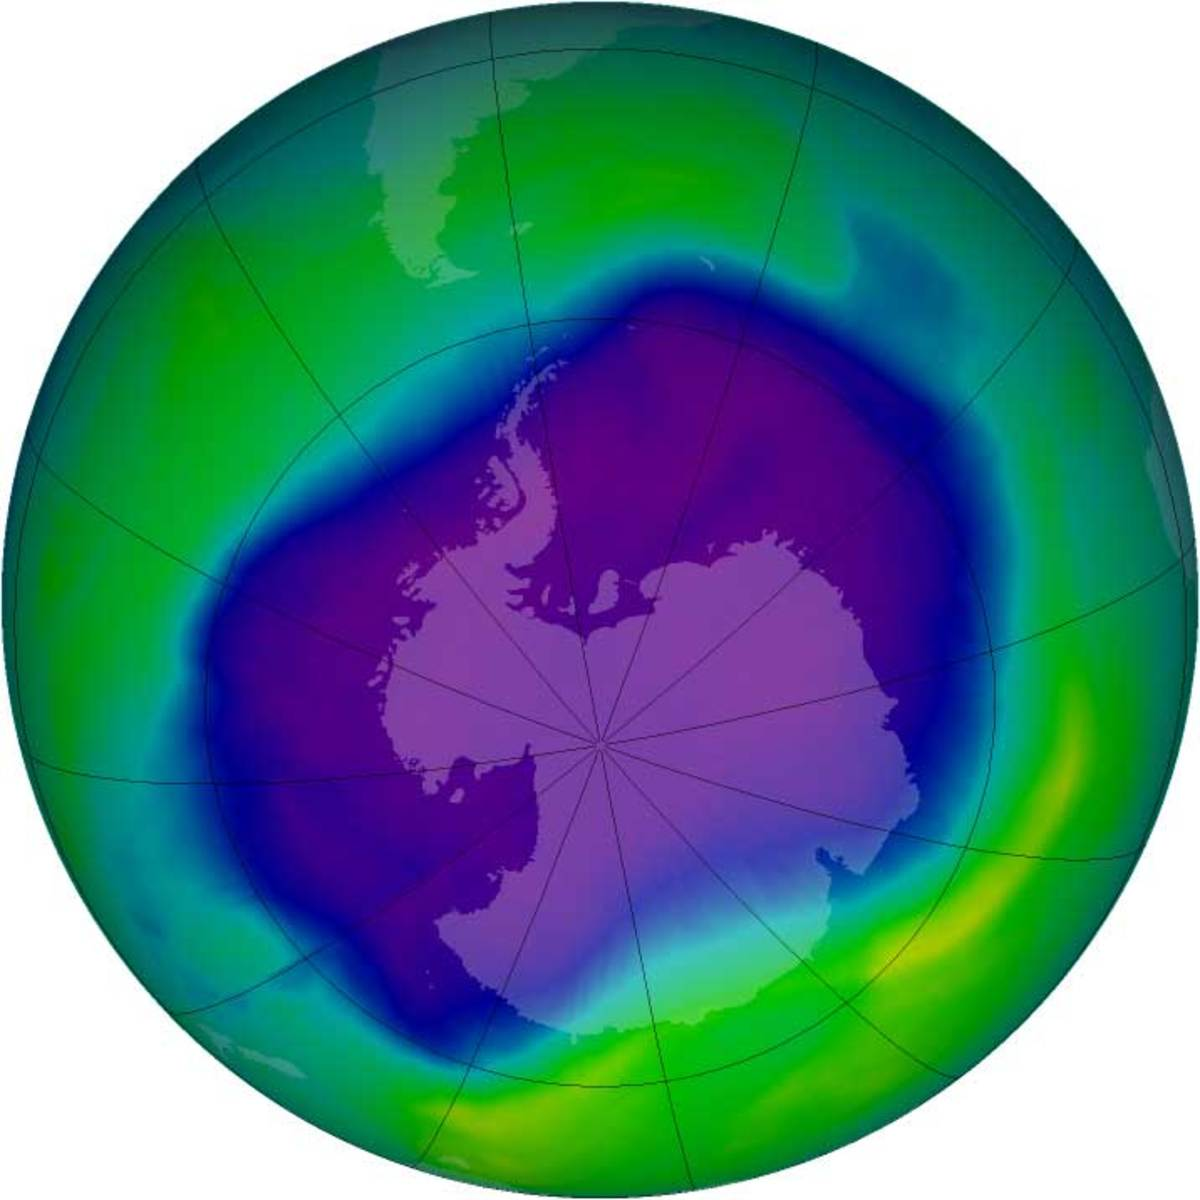 Ozone layer depletion over Antarctic